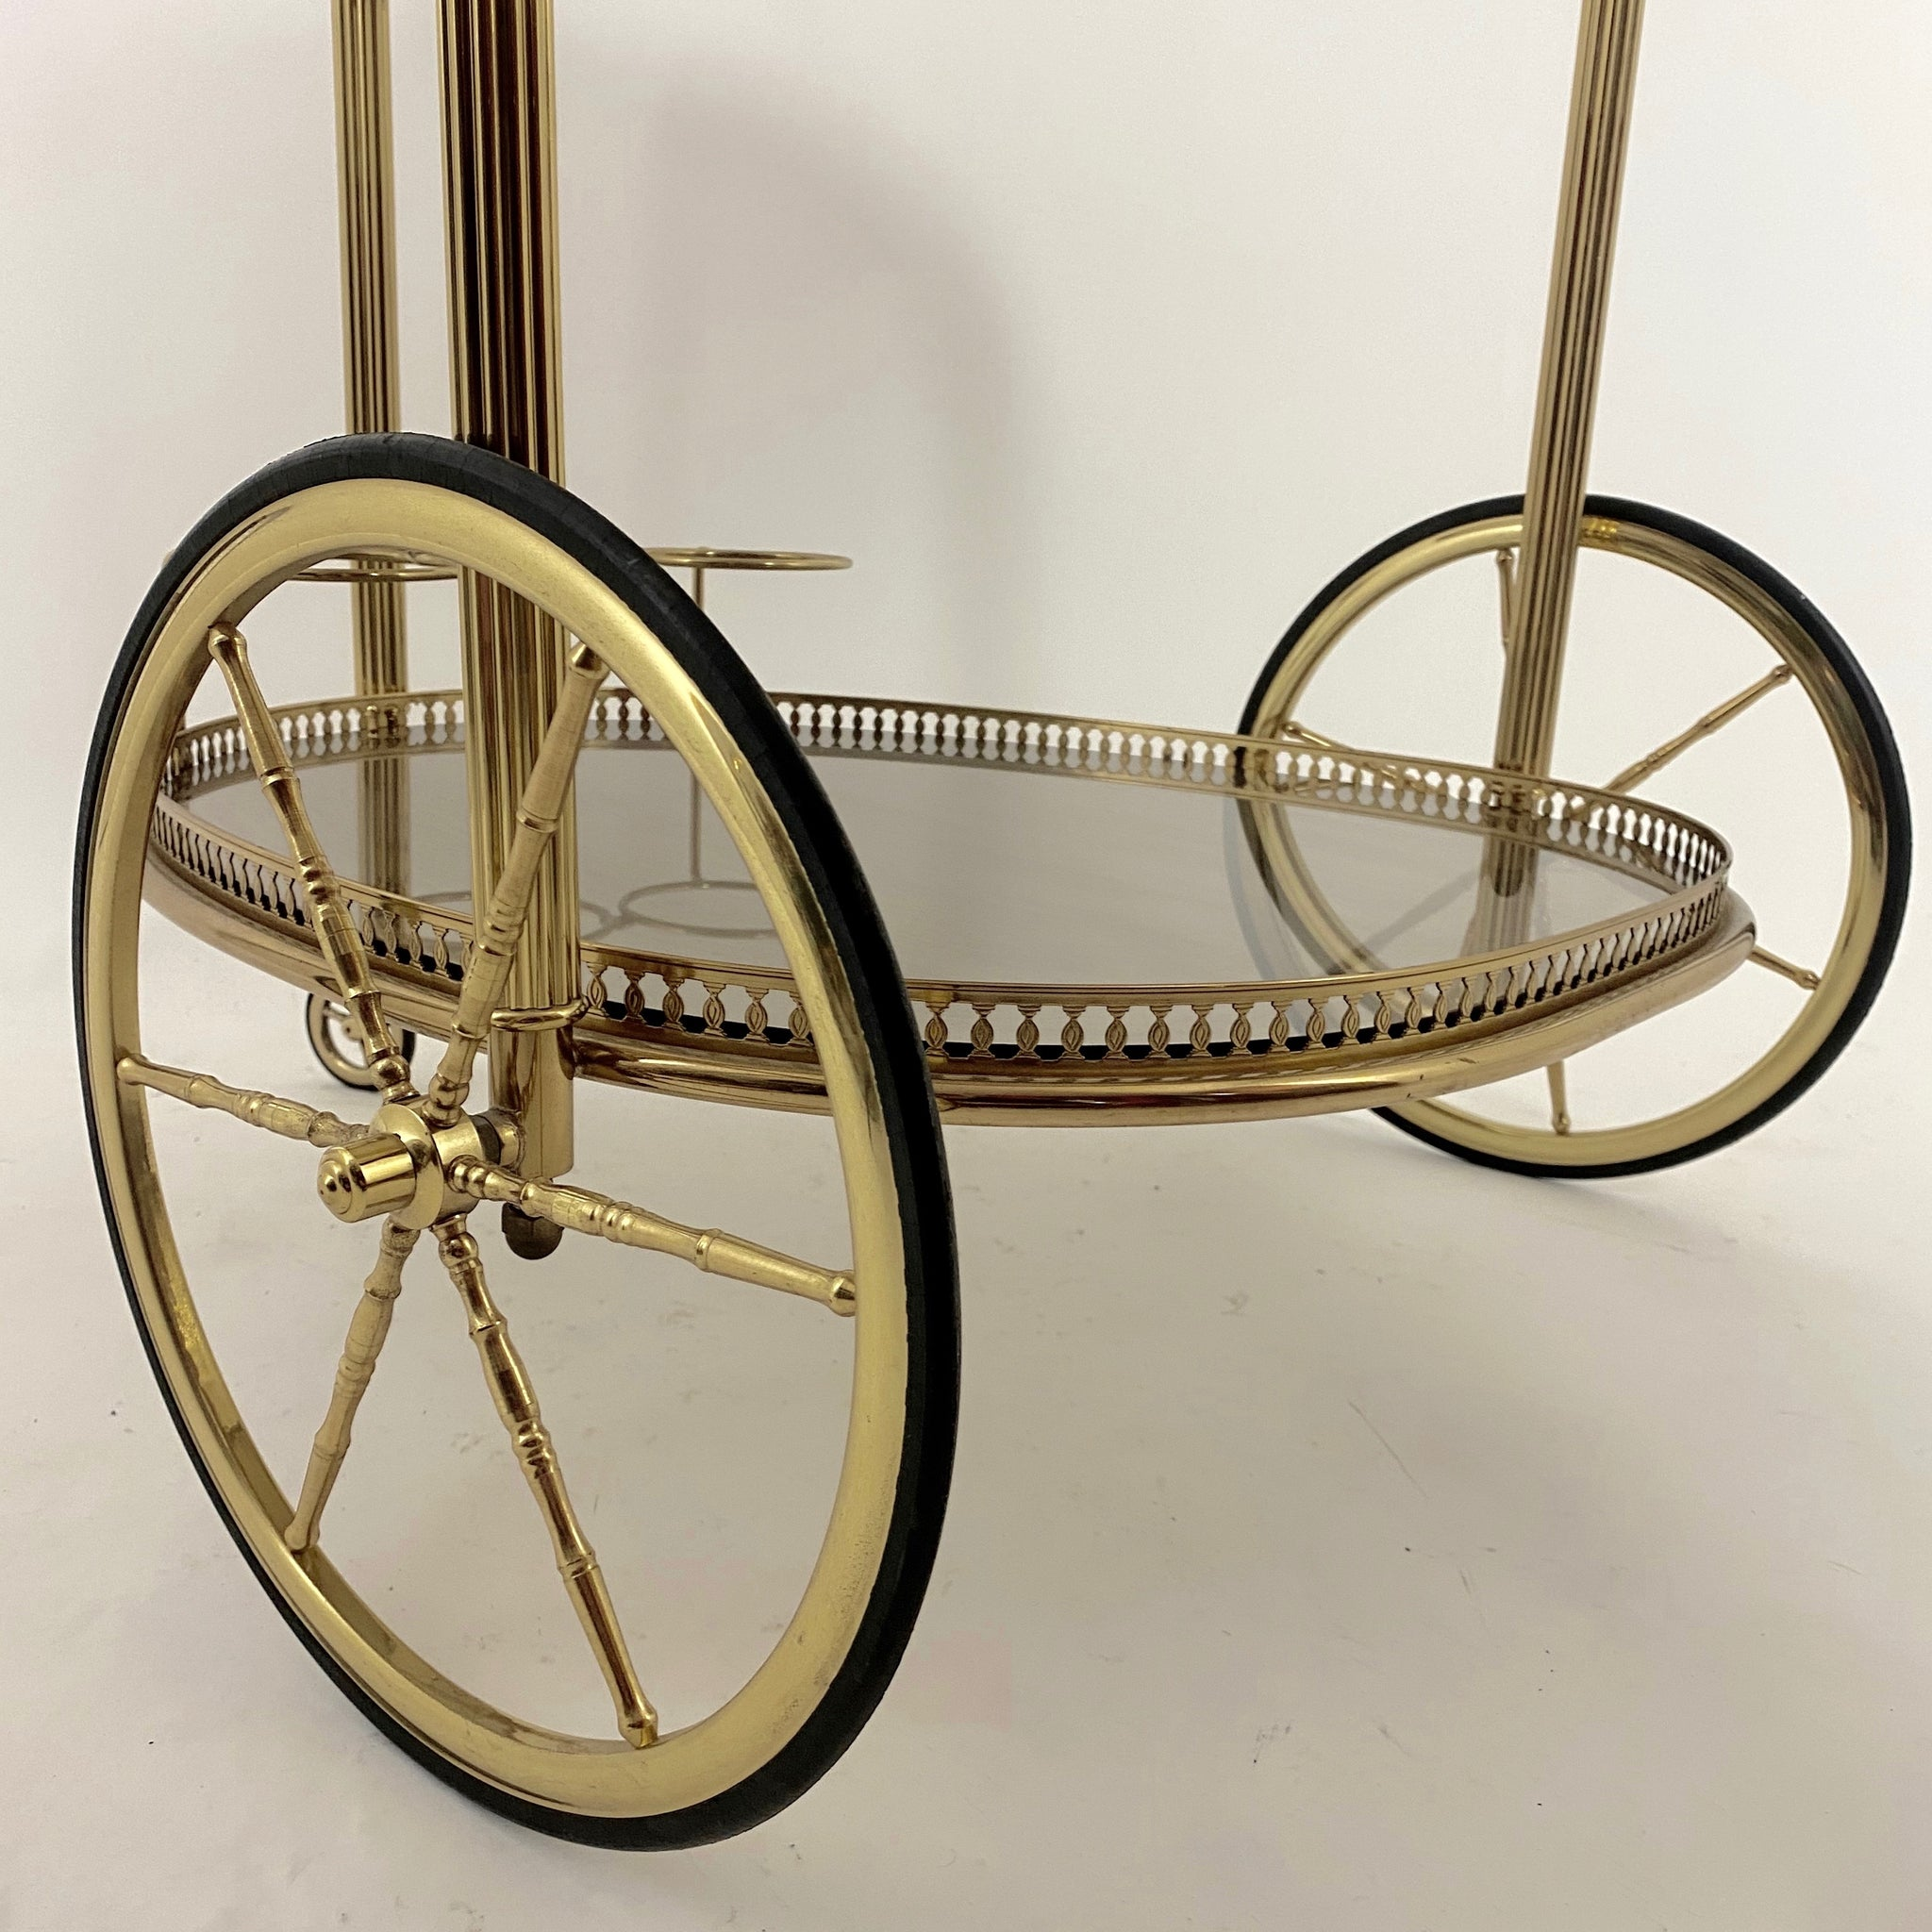 Decorative vintage brass bar cart .